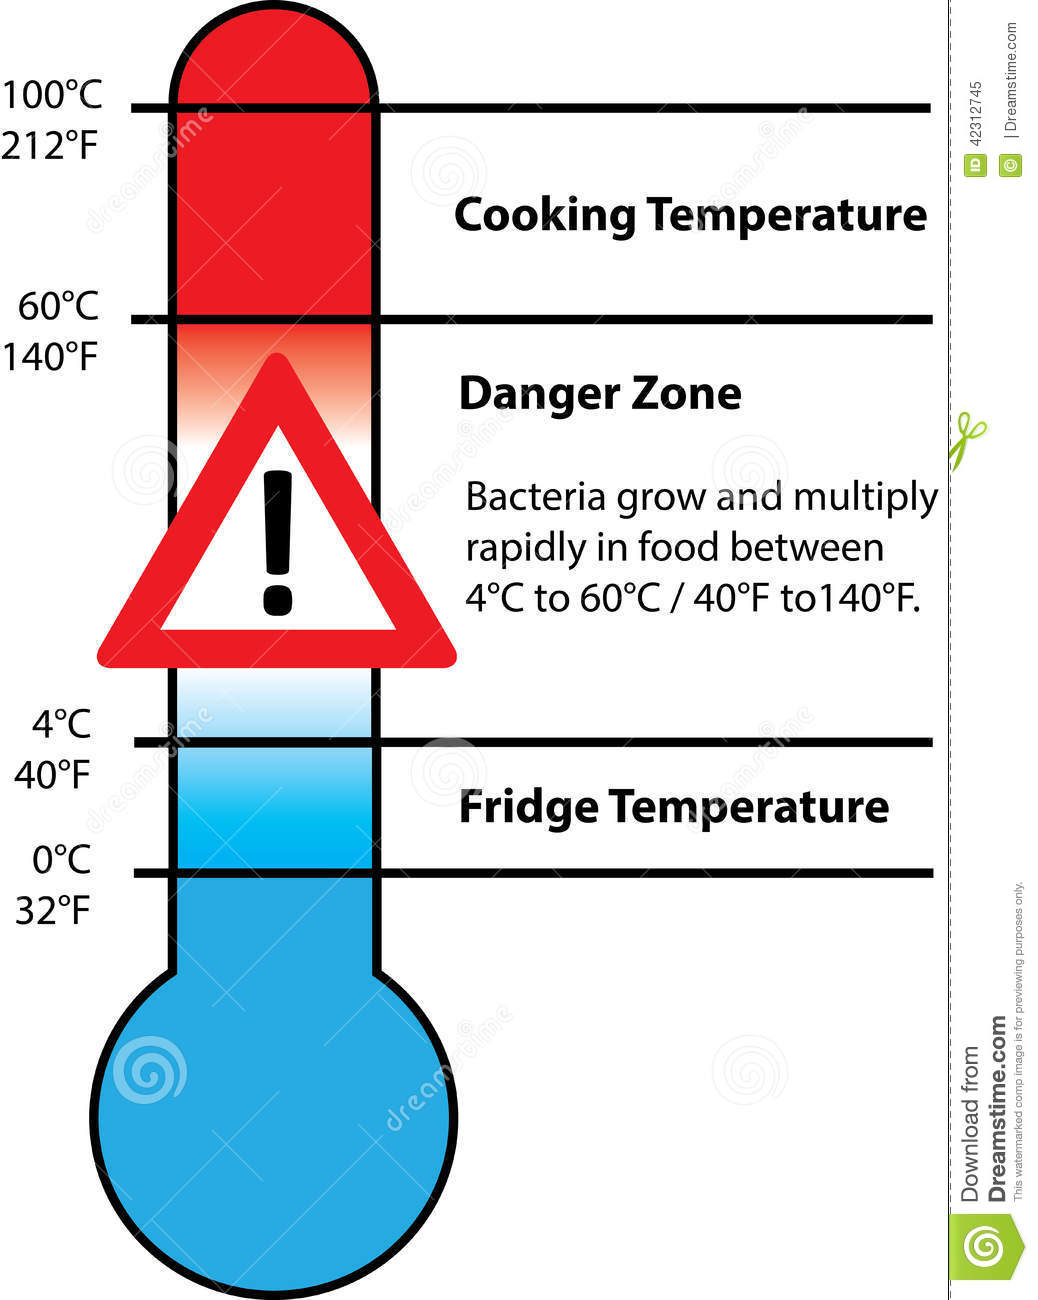 Food Safety Temperature Stock Illustration - Image: 42312745